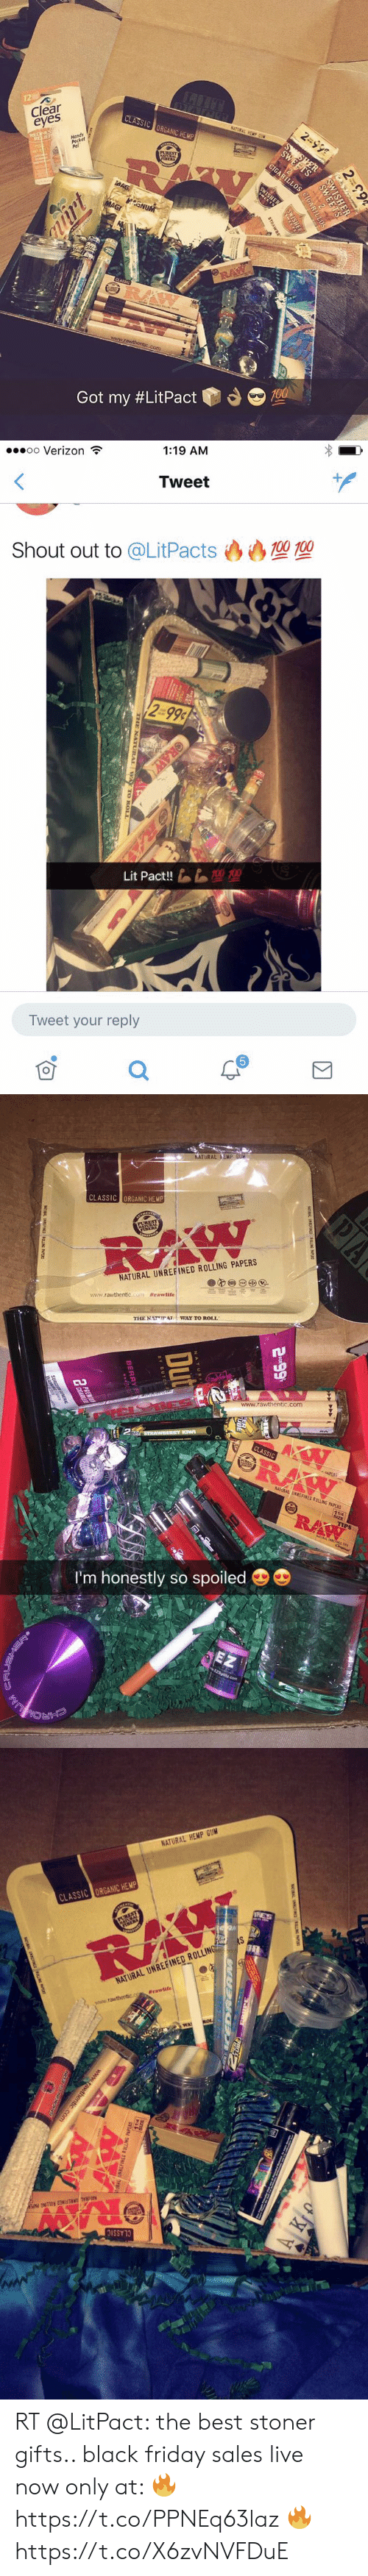 sher: 2 999  SATURAL HEWP  12  Clear  eyes  CLASSIC ORGANIC HEMP  S SHER  SWEETS  2  Hendy  Pecket  Pal  REDINES  RE EP  PUREST  NAFTRAL  ViBERS.  SWISHER  SWEET  MAG  GNUM  MAG  RAW  CLASSIC  RAW  www.rawthentic.com  Got my #LitPact  2 99  SWISHER  SWEETS  2  CIGARILLOSCIGARILLOS  SWISHE  STRAWBE   1:19 AM  oo Verizon  Tweet  100 700  Shout out to @LitPacts  2 0-99¢  0 00  Lit Pact!!  Tweet your reply  O  Σ  ORAW   NATURAL EMP GUM  CLASSIC ORGANIC HEMP)  ENTI  PUREST  BERS  RAW  NATURAL UNREFINED ROLLING PAPERS  www.rawthentic.com#rawlife  WAY TO ROLL  THE NATIPAT  www.rawthentic.com  STRAWBERRY KIW  CLASSIC  RAW  ন  NATORAL UNREFINEC ROLLING PAPERS  114  RA  I'm honestly so spoiled  EZ  HRON  PA  NBL IREFINCE LING NPLRS  2 o99  Dut   NATURAL HEMP GUM  CLASSIC ORGANIC HEMP  BERS  RAW  NATURAL UNREFINED ROLLING  www.rawthentic.co  #eawlife  NARAL UNREFINED ROLLING PAPER  CLASSIC  www.rawthentic.com RT @LitPact: the best stoner gifts..   black friday sales live now   only at: 🔥 https://t.co/PPNEq63laz 🔥 https://t.co/X6zvNVFDuE